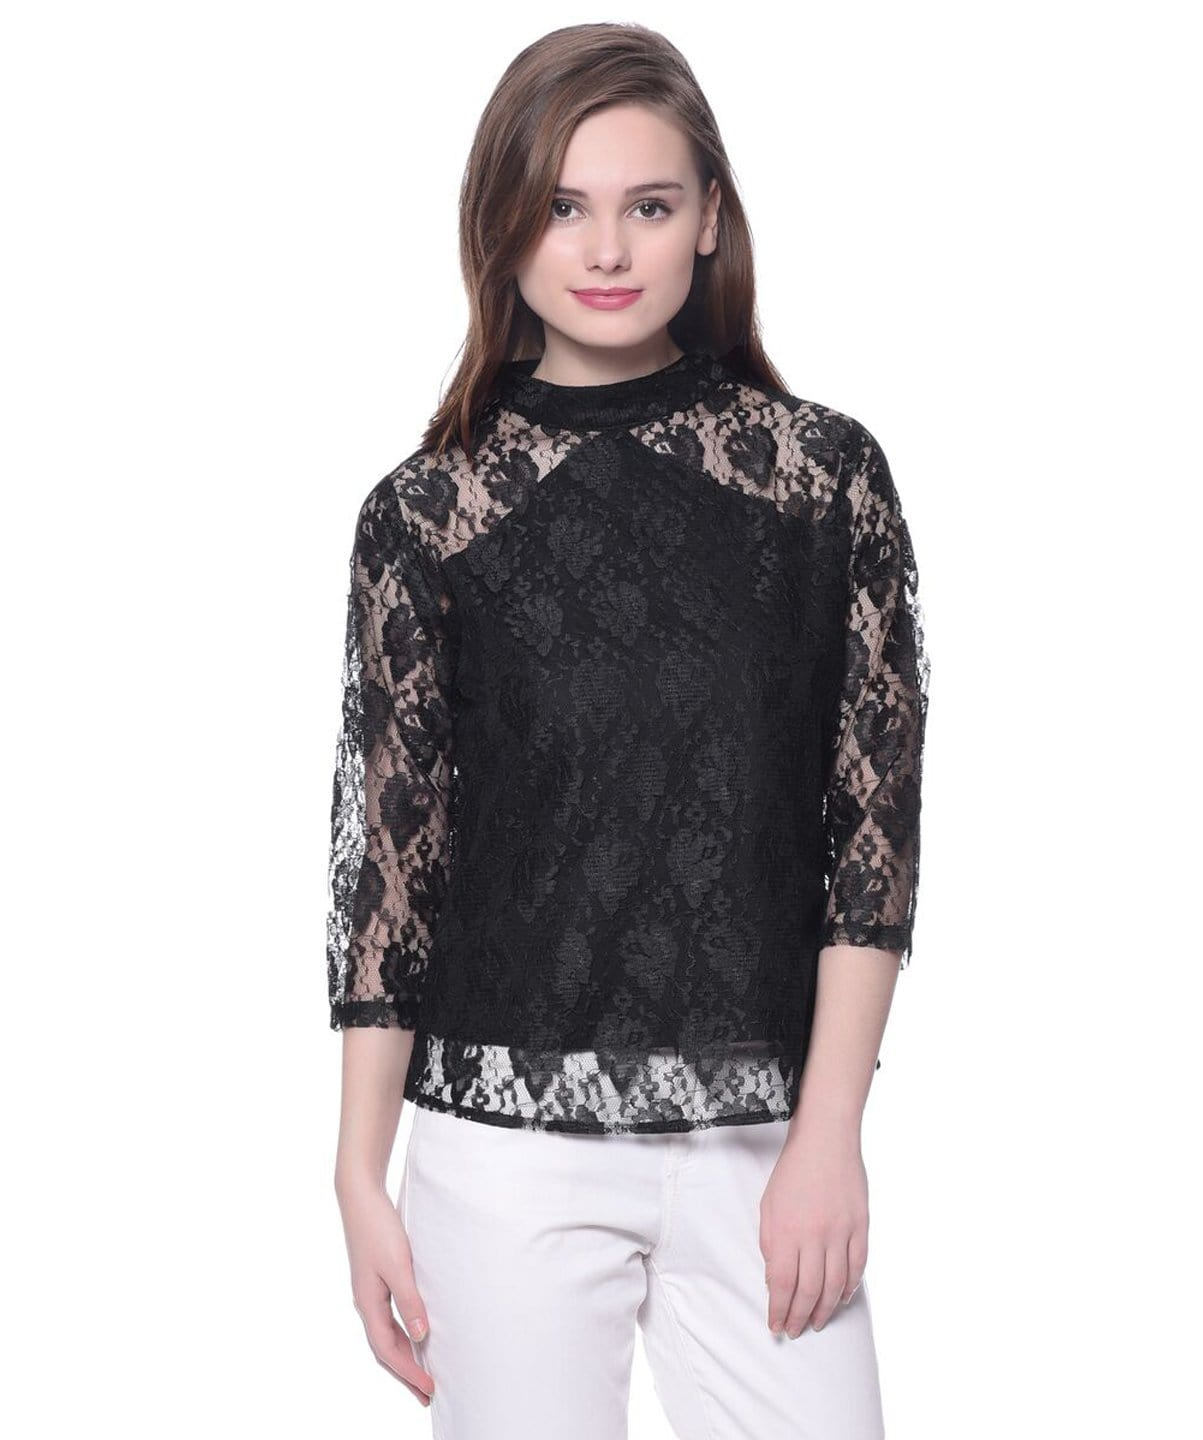 Solid Black Lace Top - Uptownie